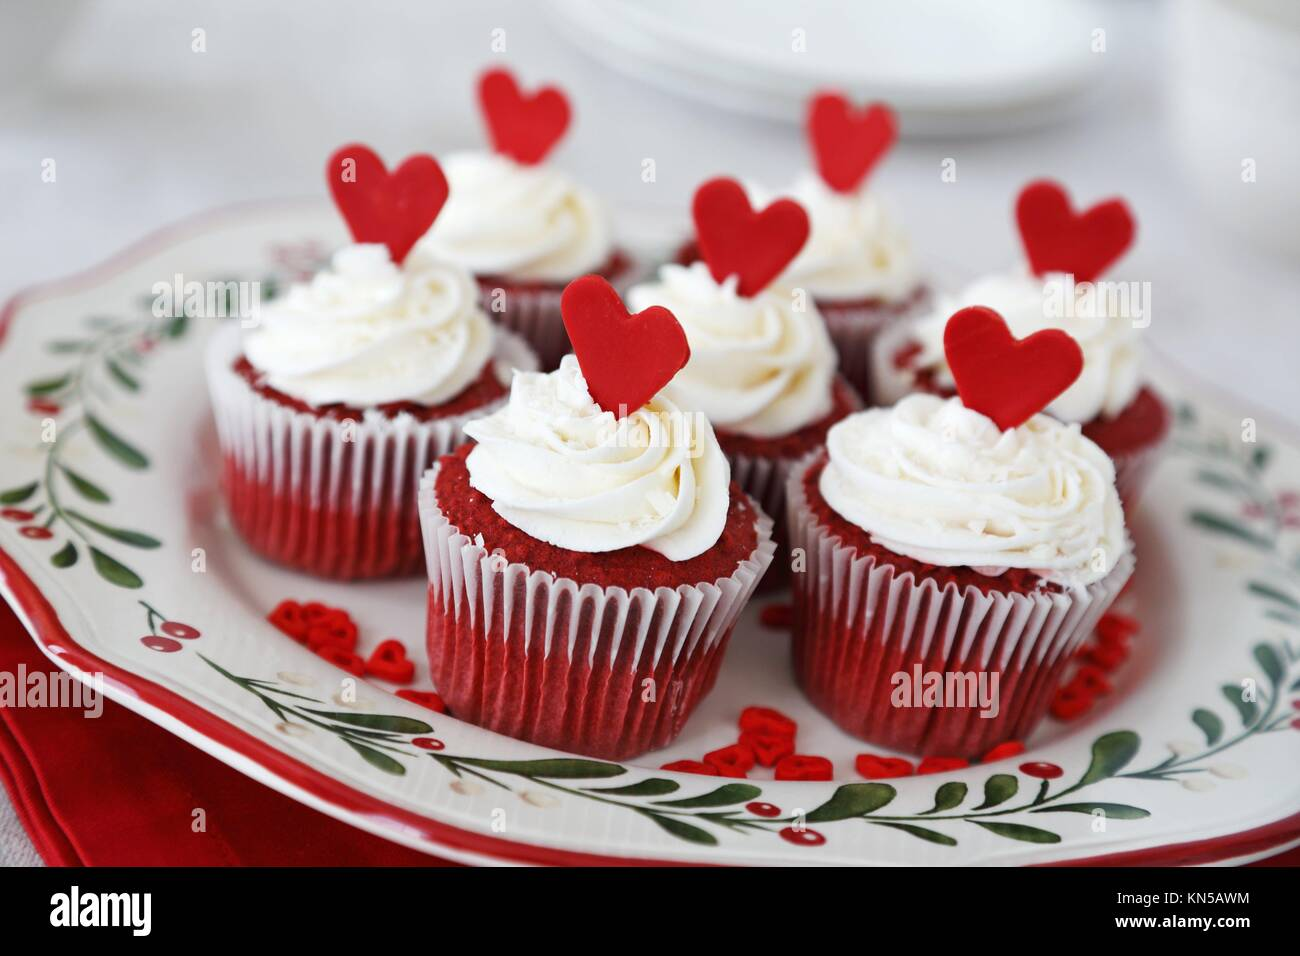 Red Velvet Cupcakes Decorated For Christmas With Red Hearts Stock Photo Alamy